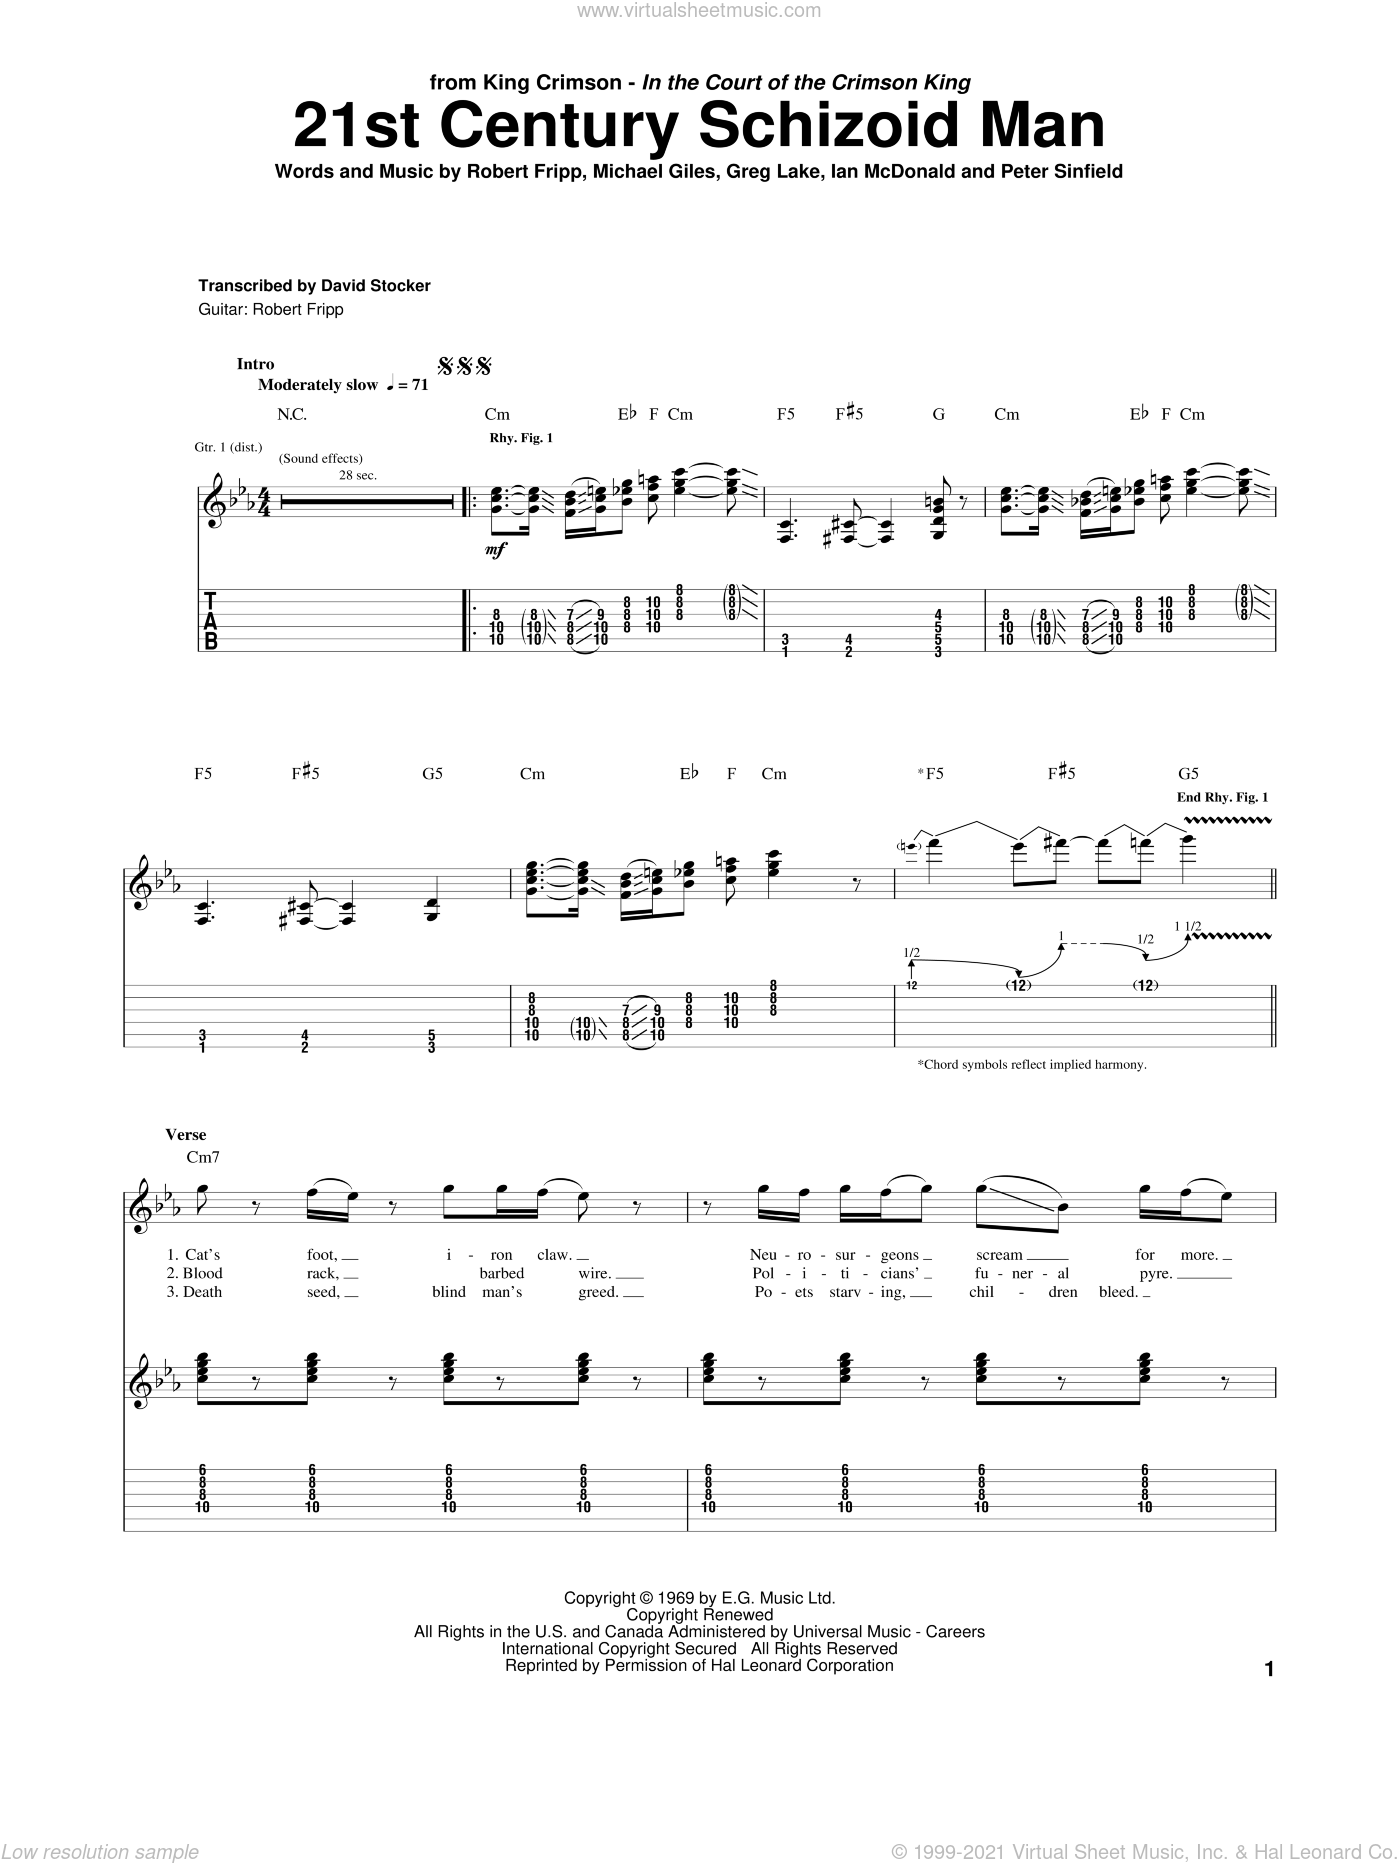 21st Century Schizoid Man sheet music for guitar (tablature) by Robert Fripp, Greg Lake and Peter Sinfield. Score Image Preview.